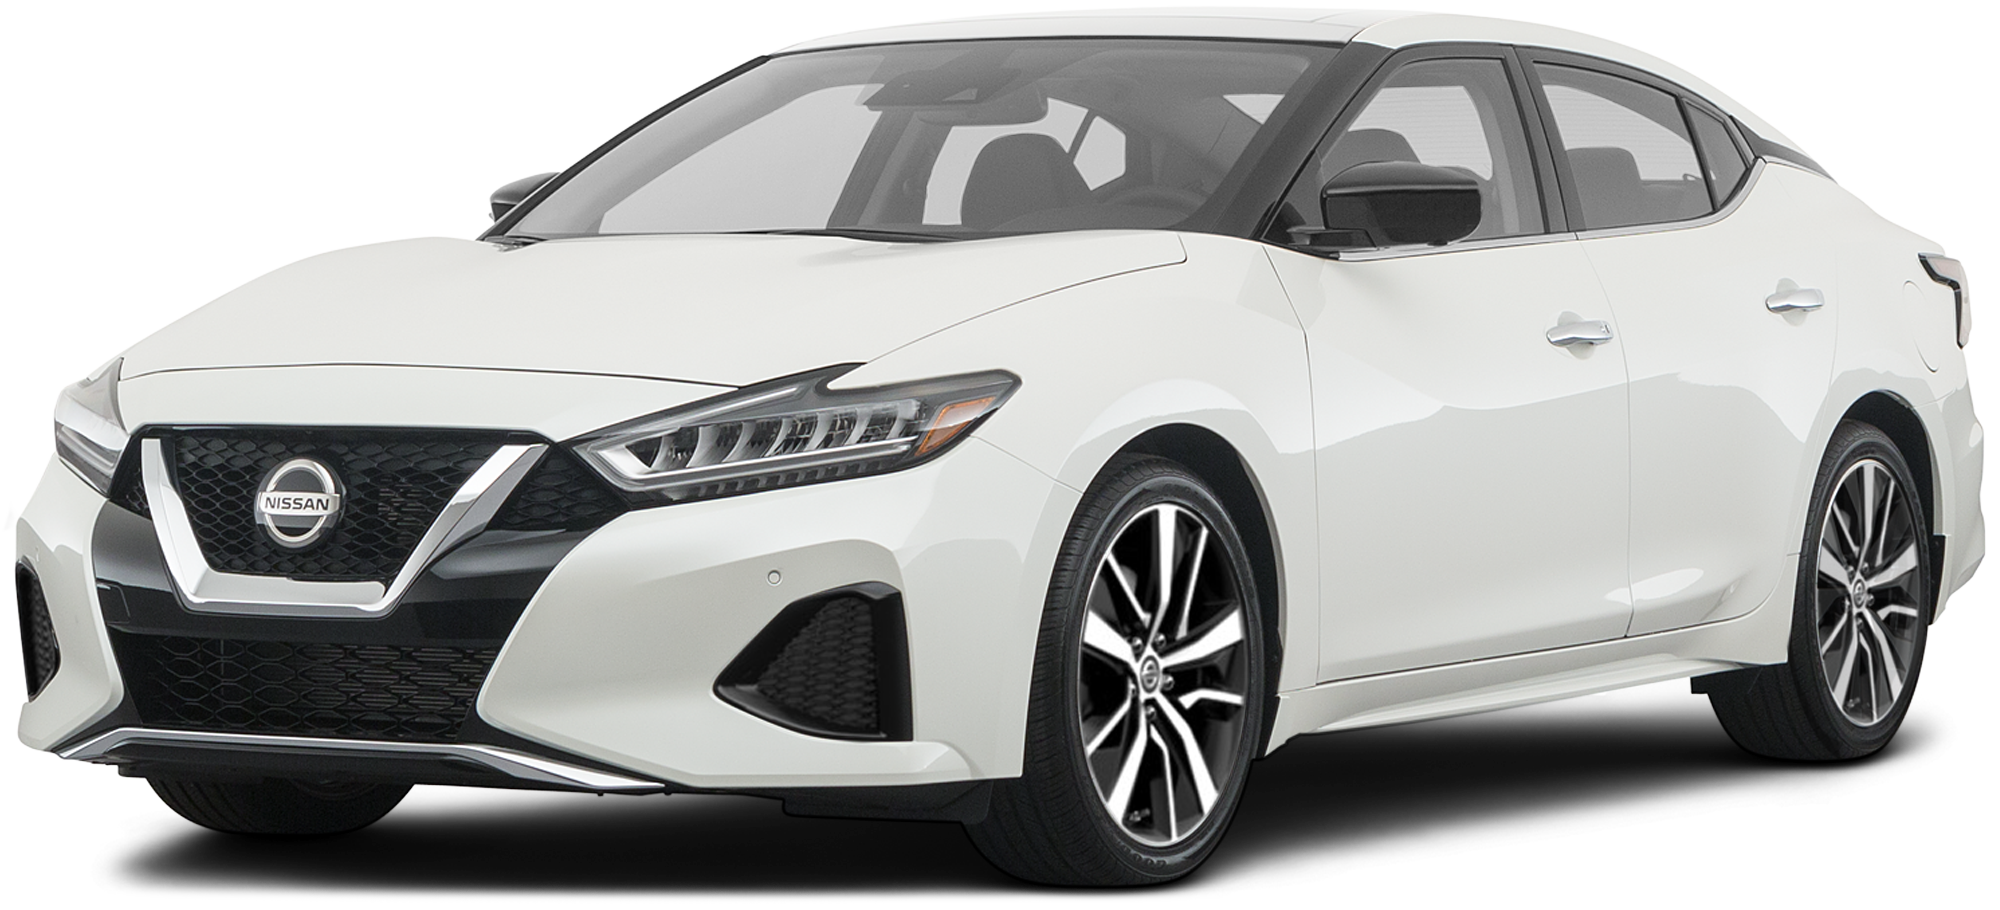 2020 Nissan Maxima Incentives, Specials & Offers in ...